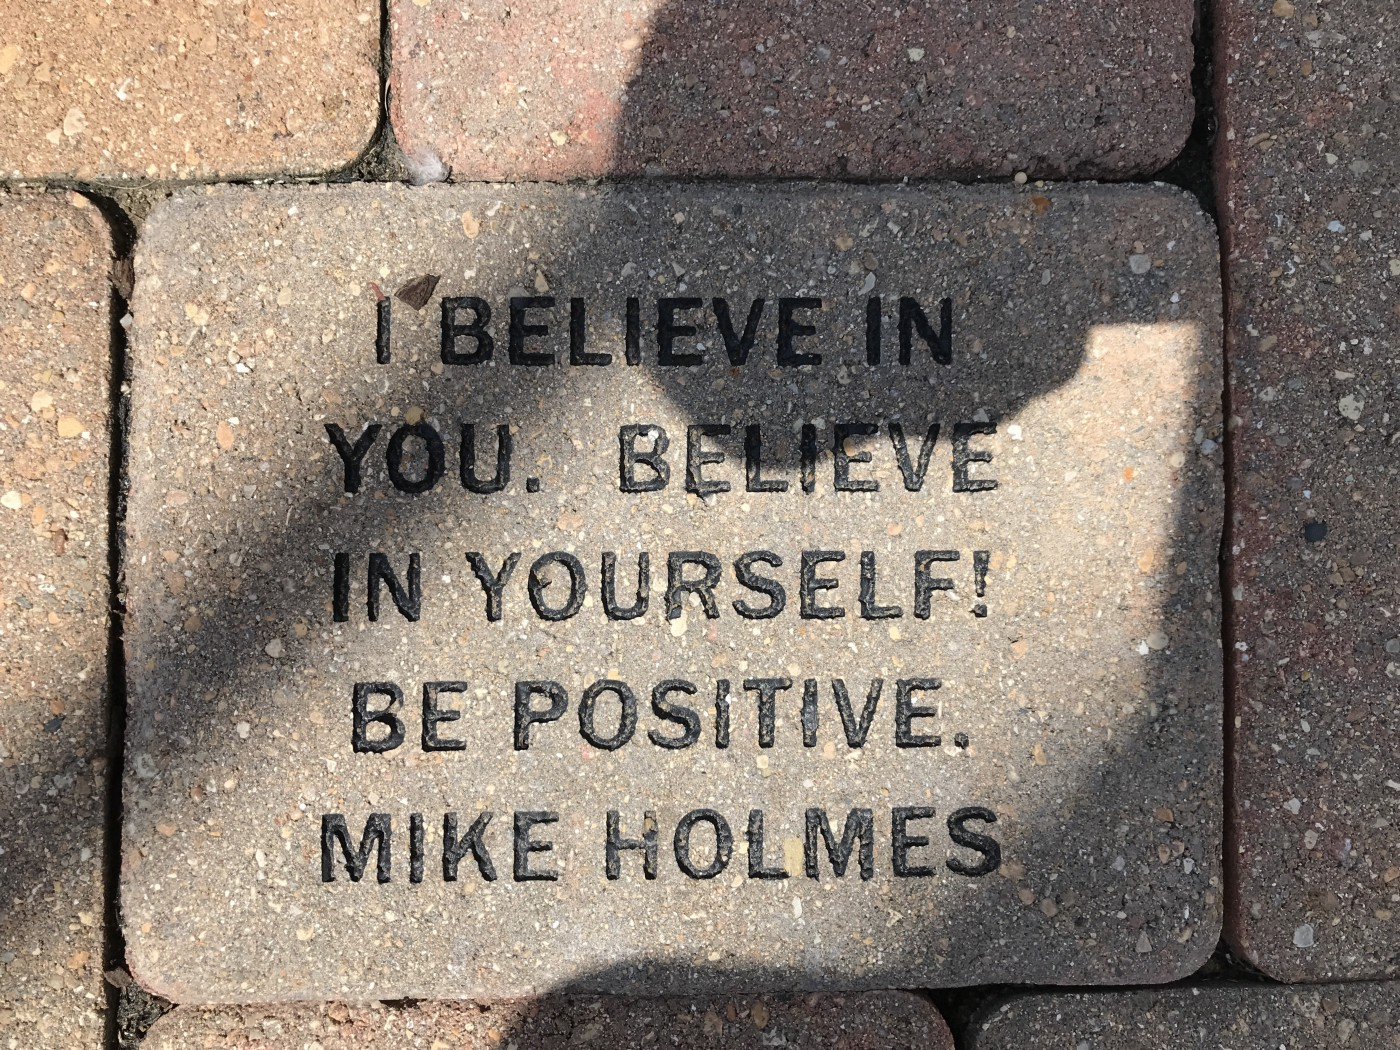 """A square block that says """"I believe in you. Believe in yourself. Be positive. Mike Holmes"""